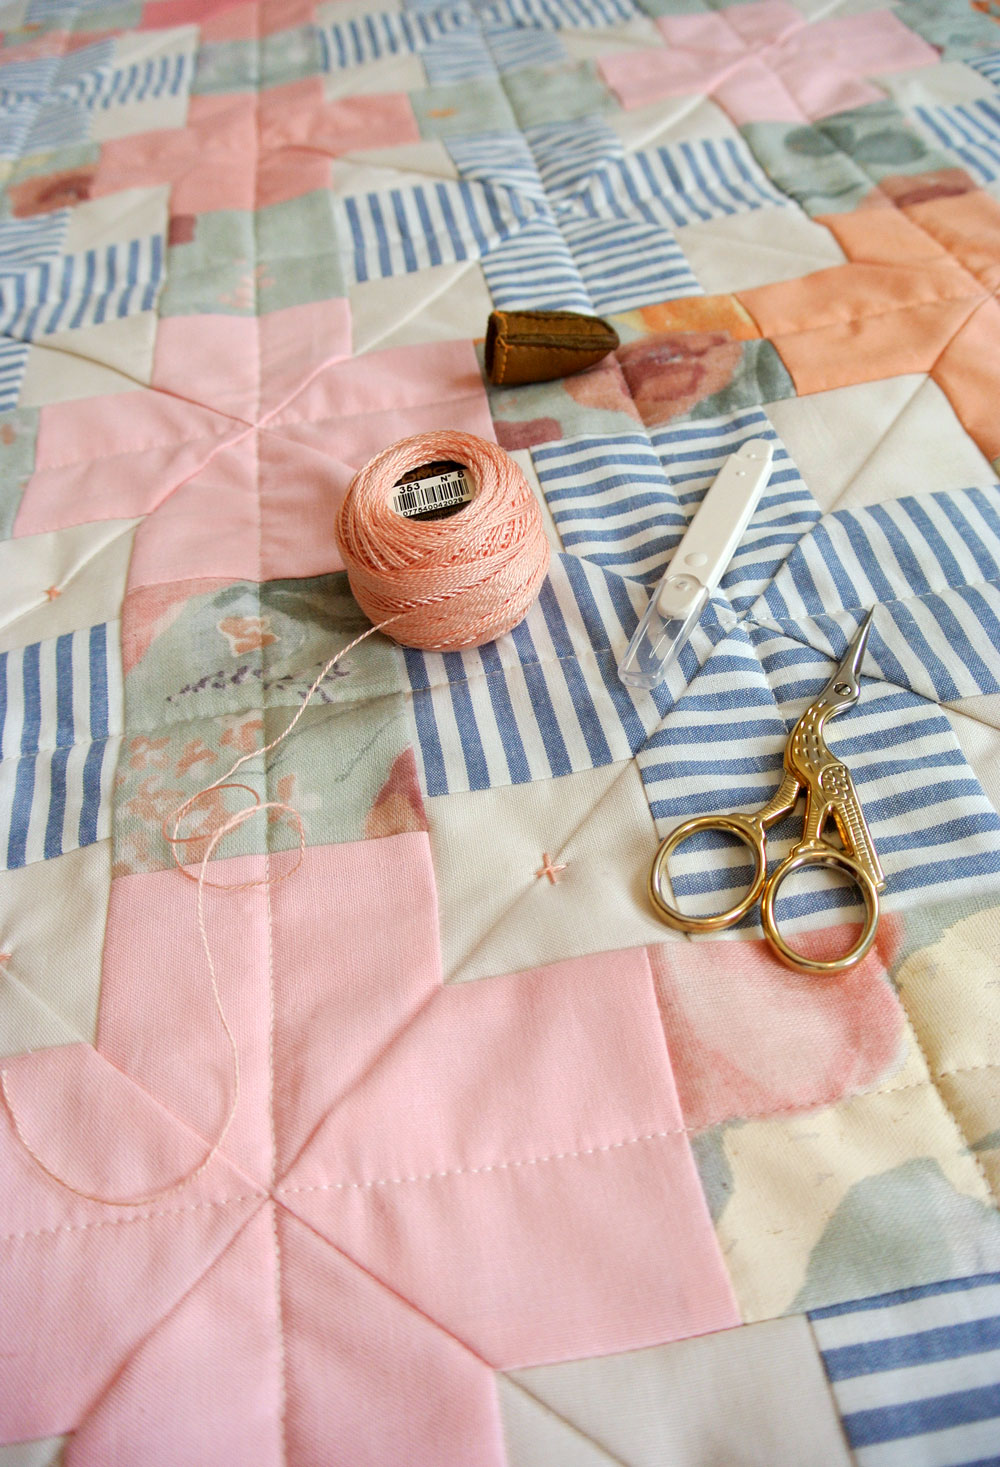 Quilt-Tie-Supplies